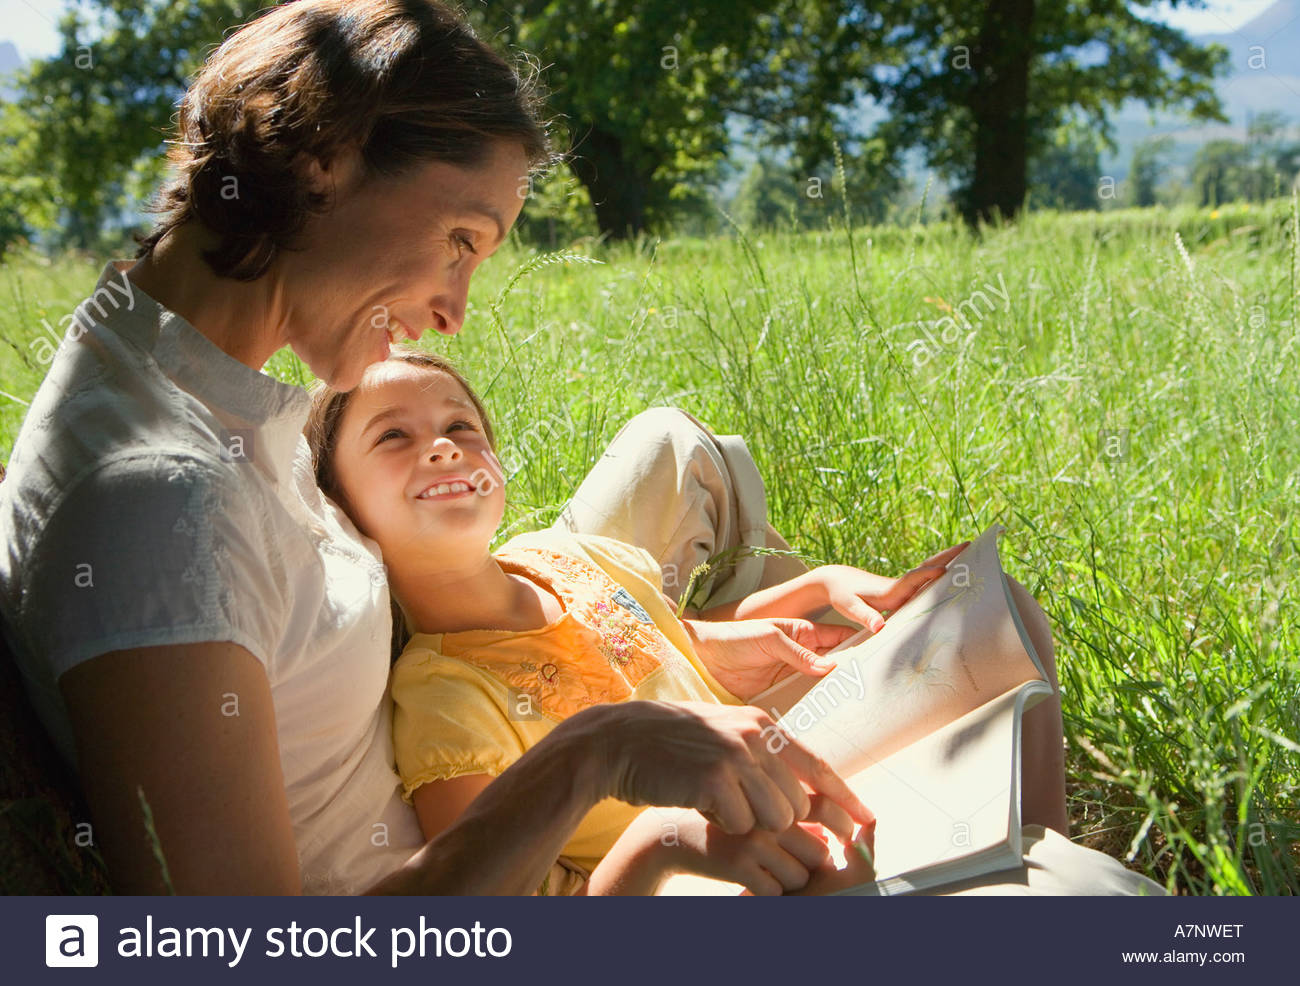 Mother reading storybook to daughter 8 10 in field smiling side view - Stock Image